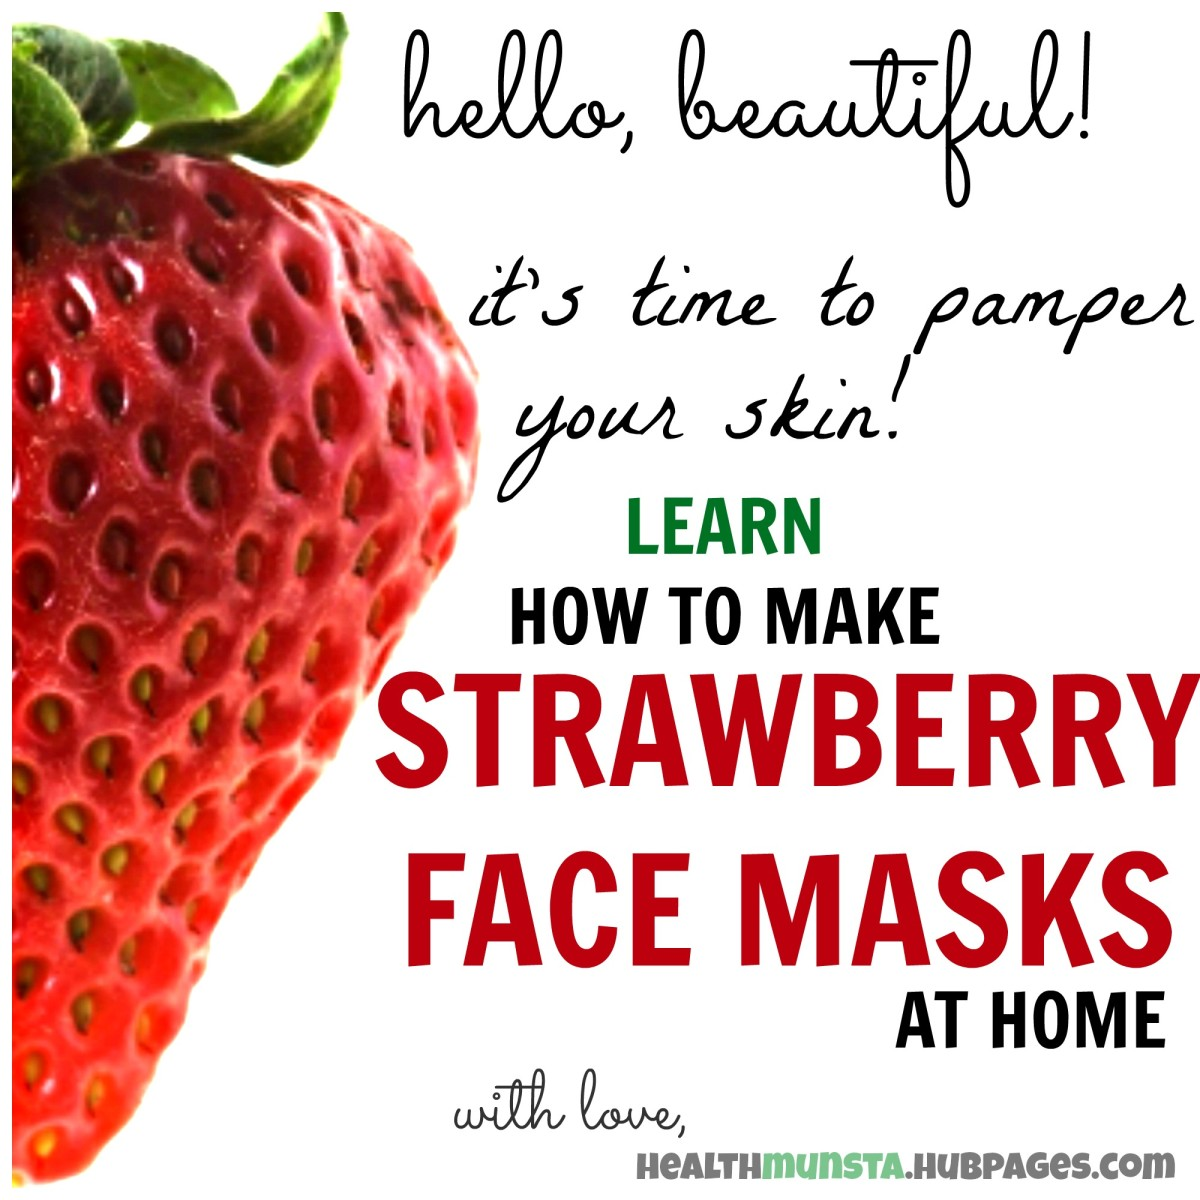 Top 3 Easy Strawberry Face Mask Recipes to Make at Home